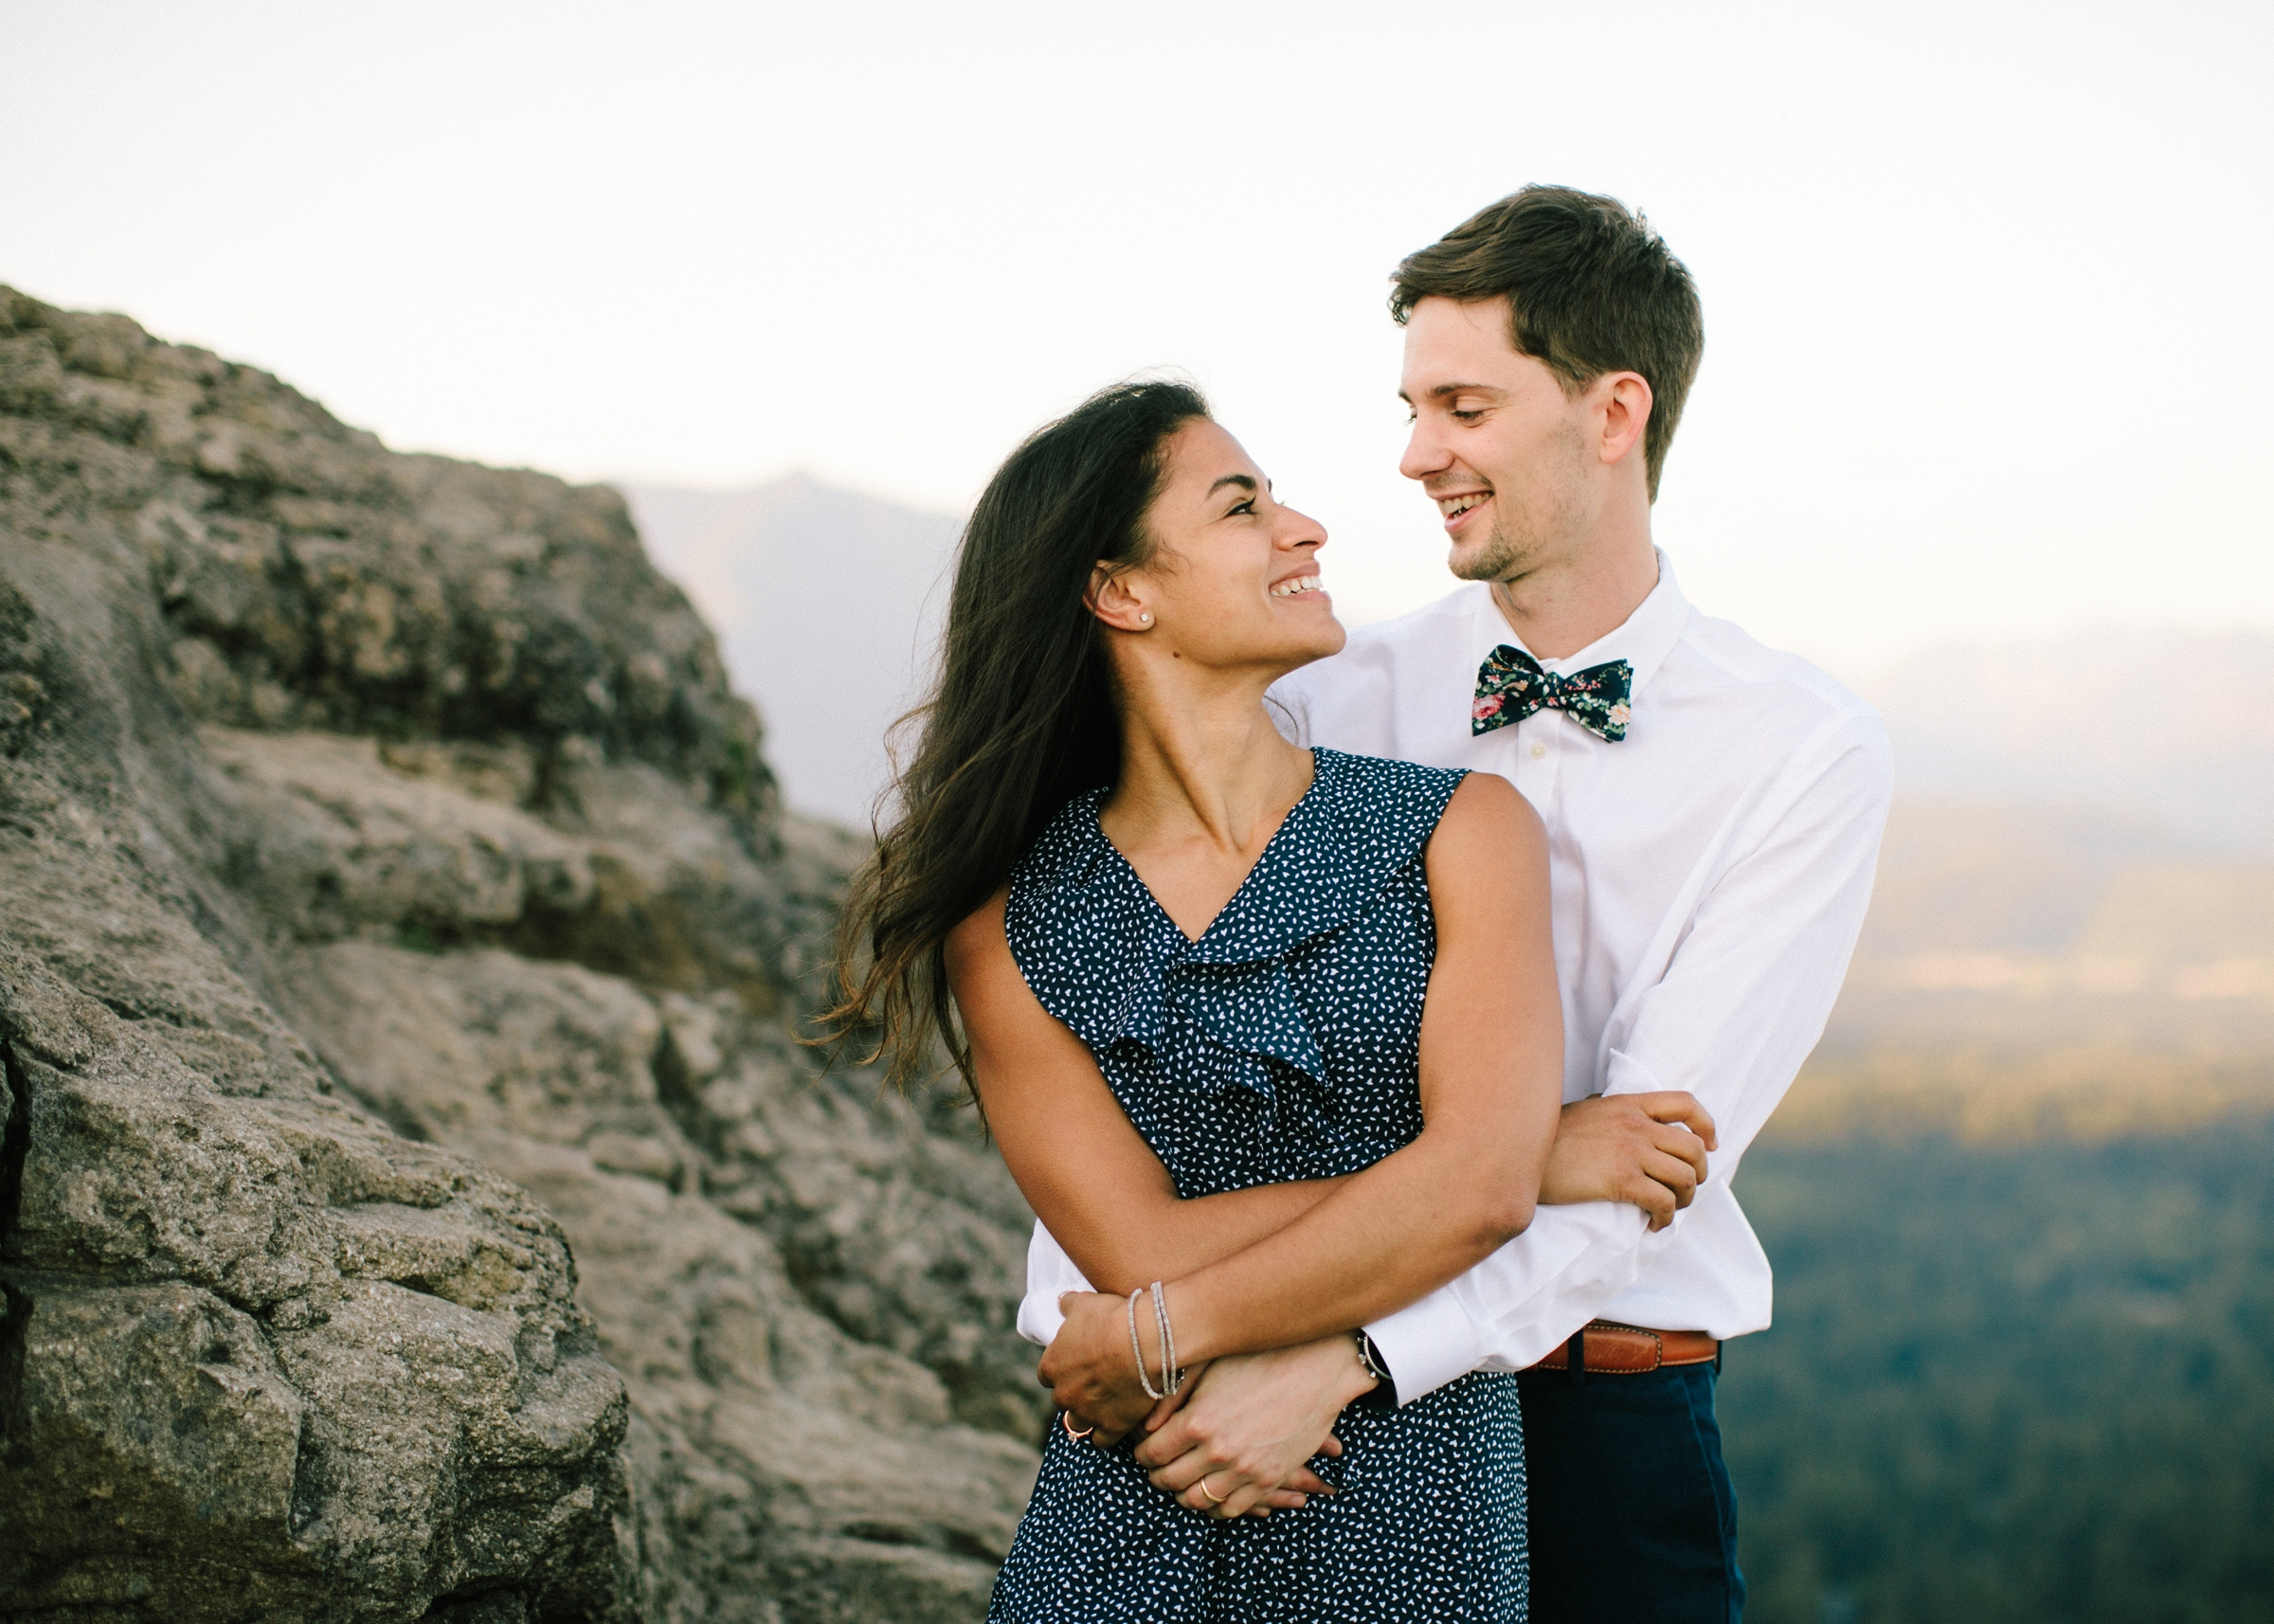 adventure-mountain-top-elopement-photographer-pnw-seattle-washington-wedding-engagement-hike-photography-catie-bergman_0011.jpg